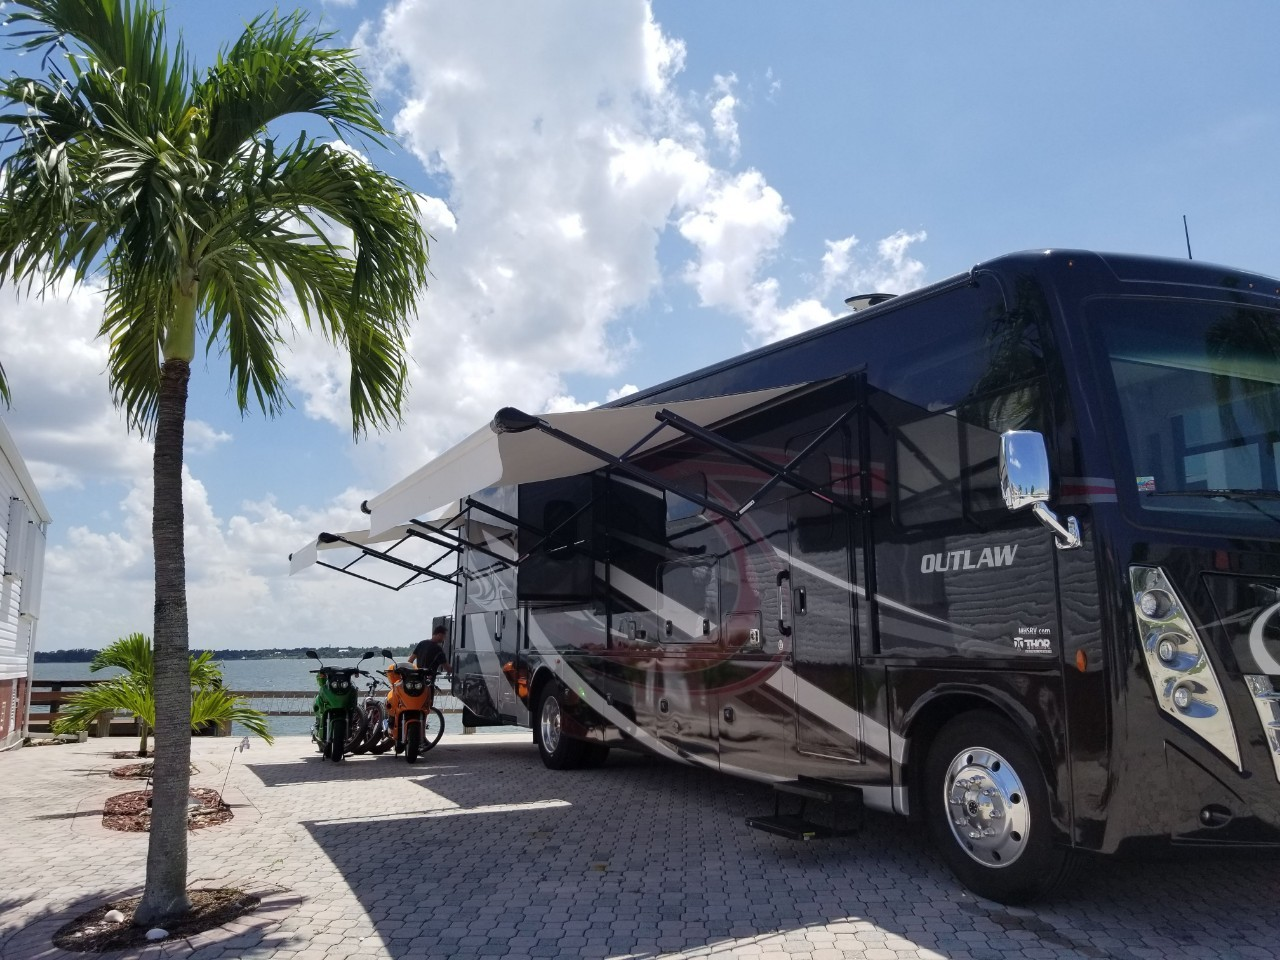 Texas - Class A Motorhomes For Sale - RV Trader